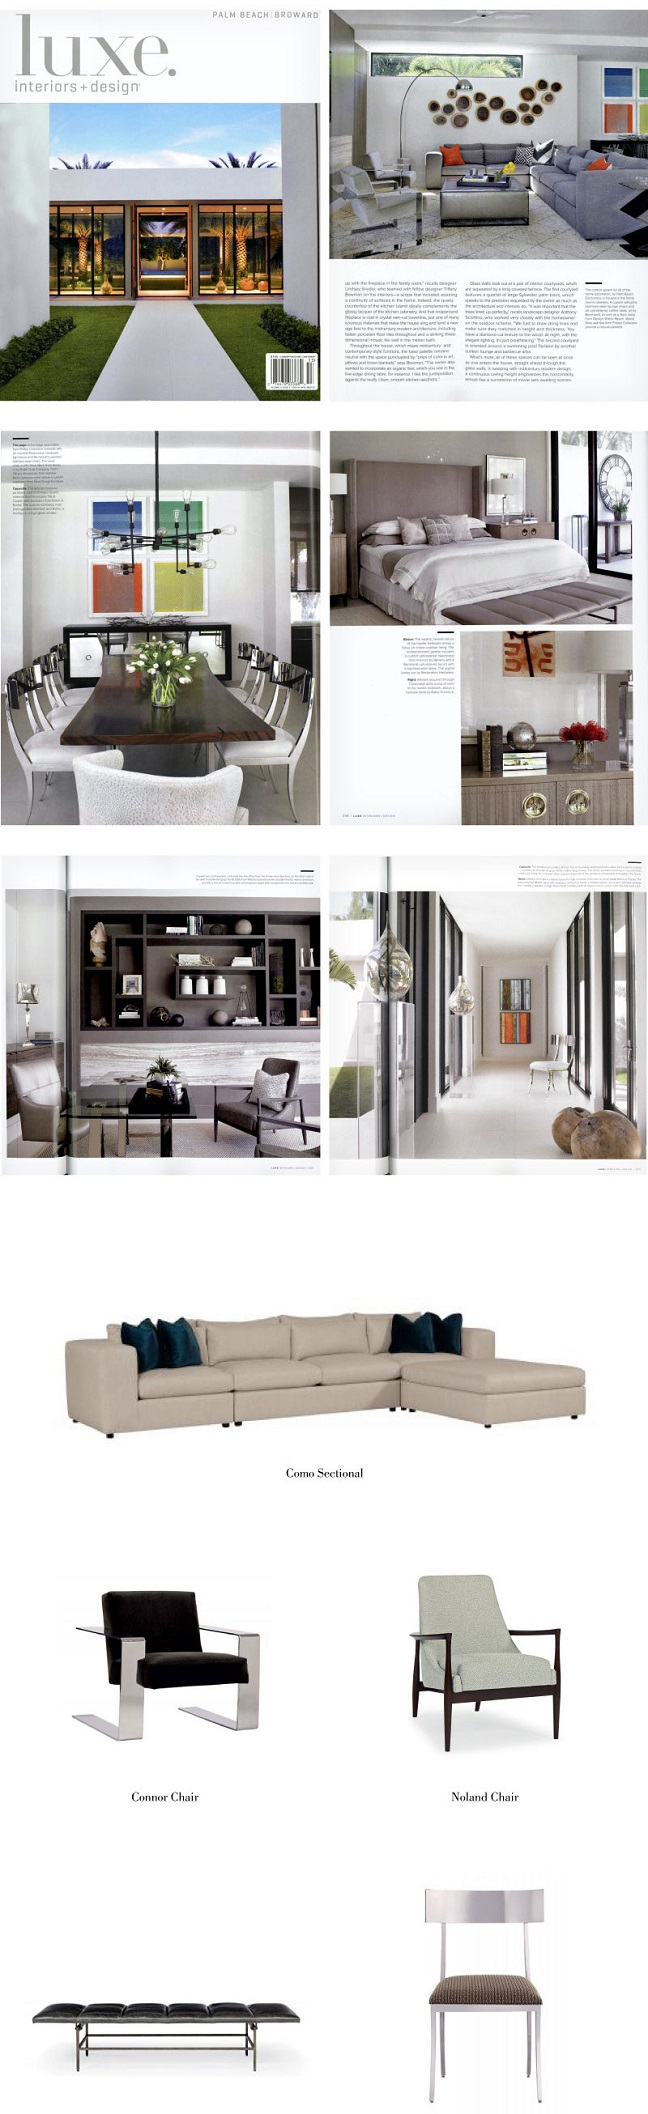 Bernhardt Como Sectional, Connor Chair, Noland Chair, Ardmore Bench, Gustav Chair in Luxe